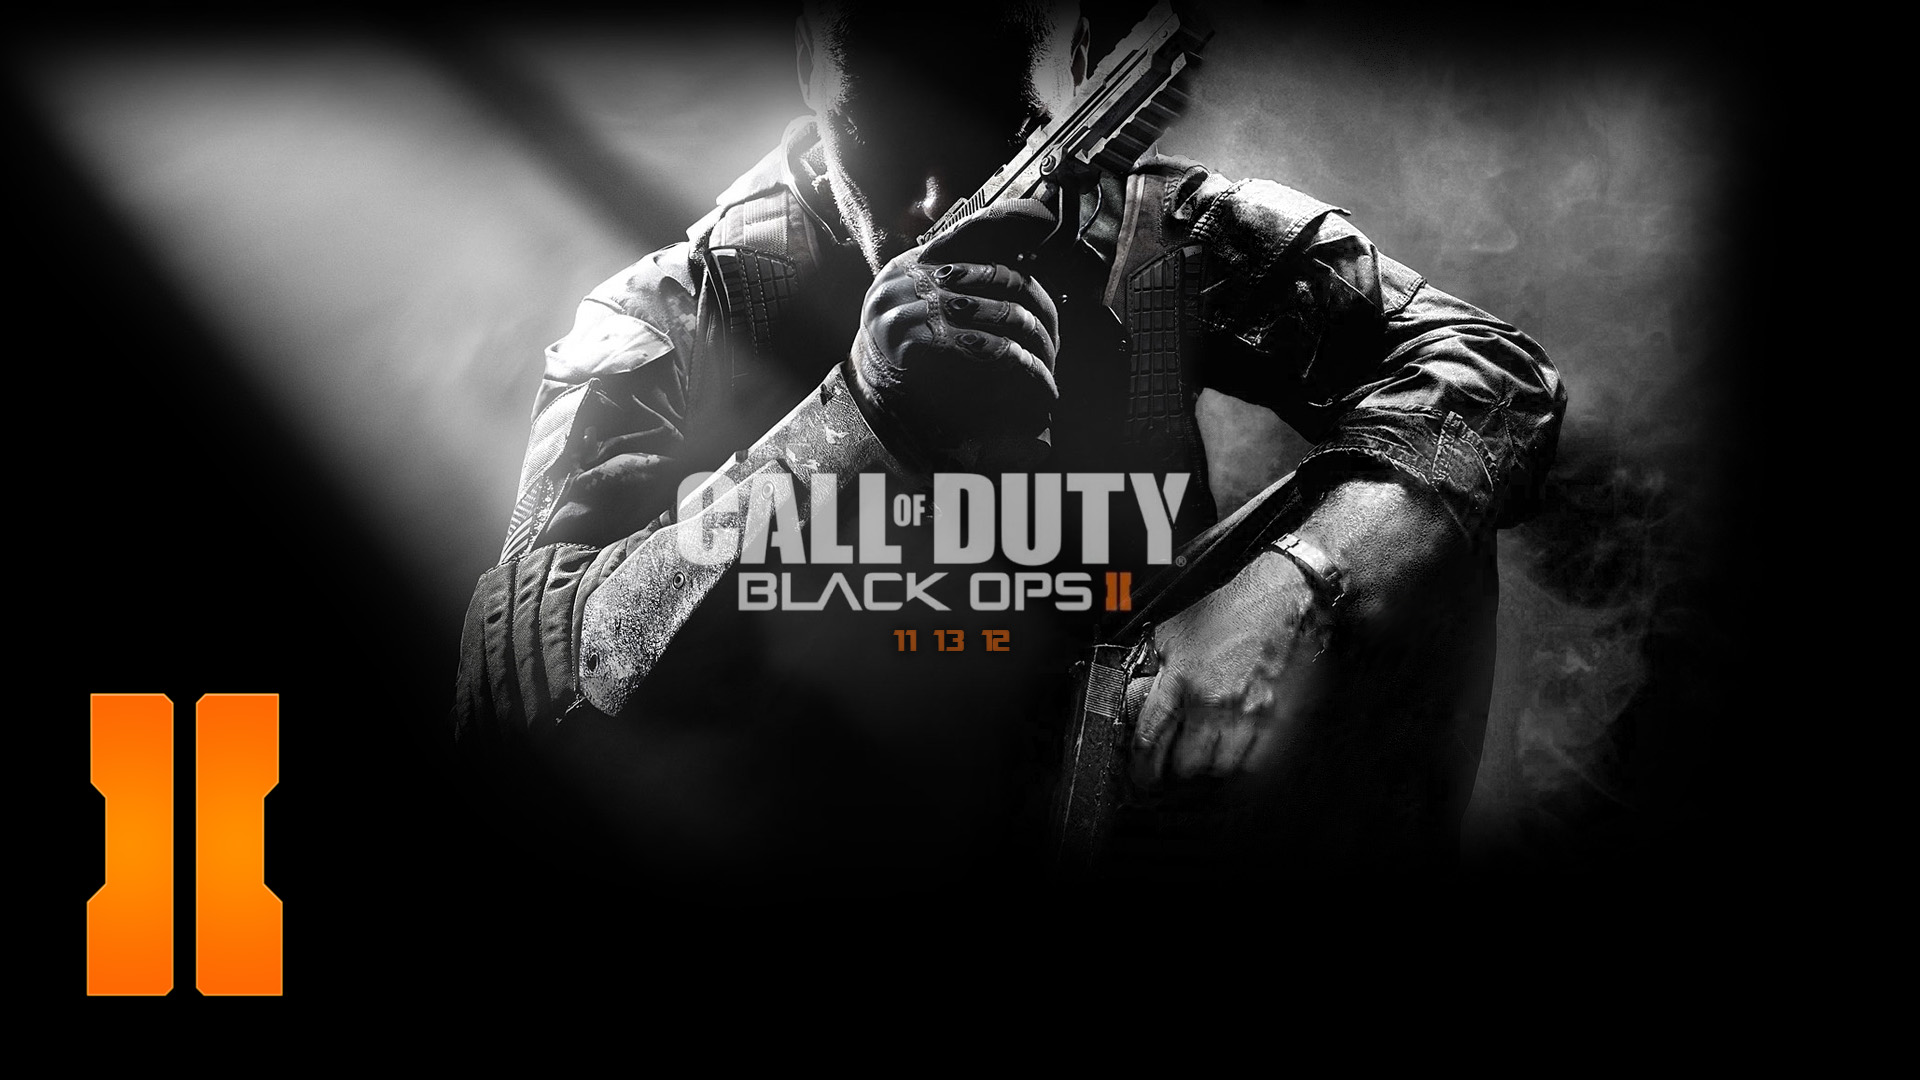 Free Download Call Of Duty Black Ops 2 Wallpaper 1920x1080 For